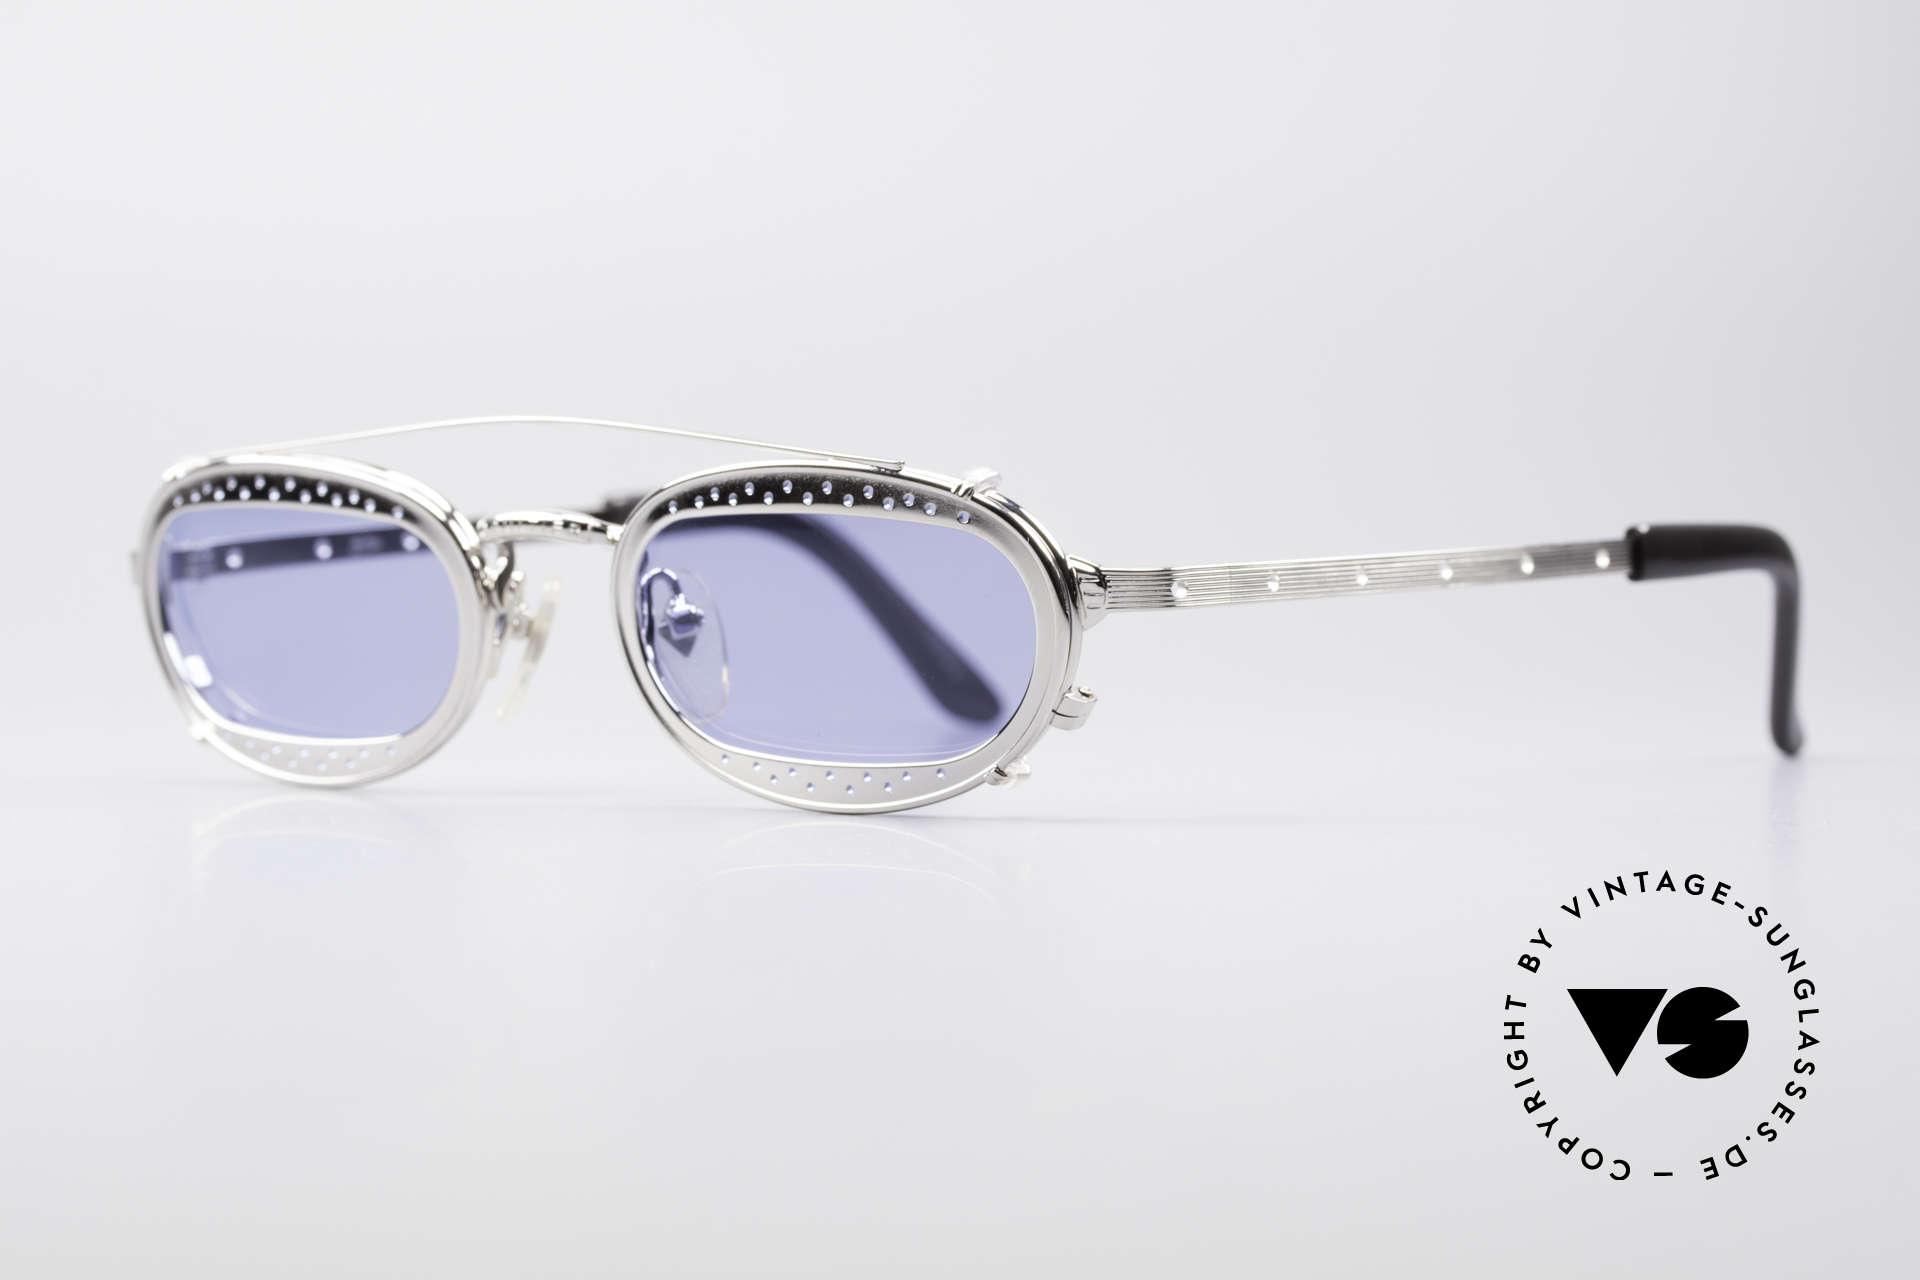 Jean Paul Gaultier 56-7116 Limited Vintage Glasses, with ingenious CLIP-ON (made for prescription lenses), Made for Men and Women